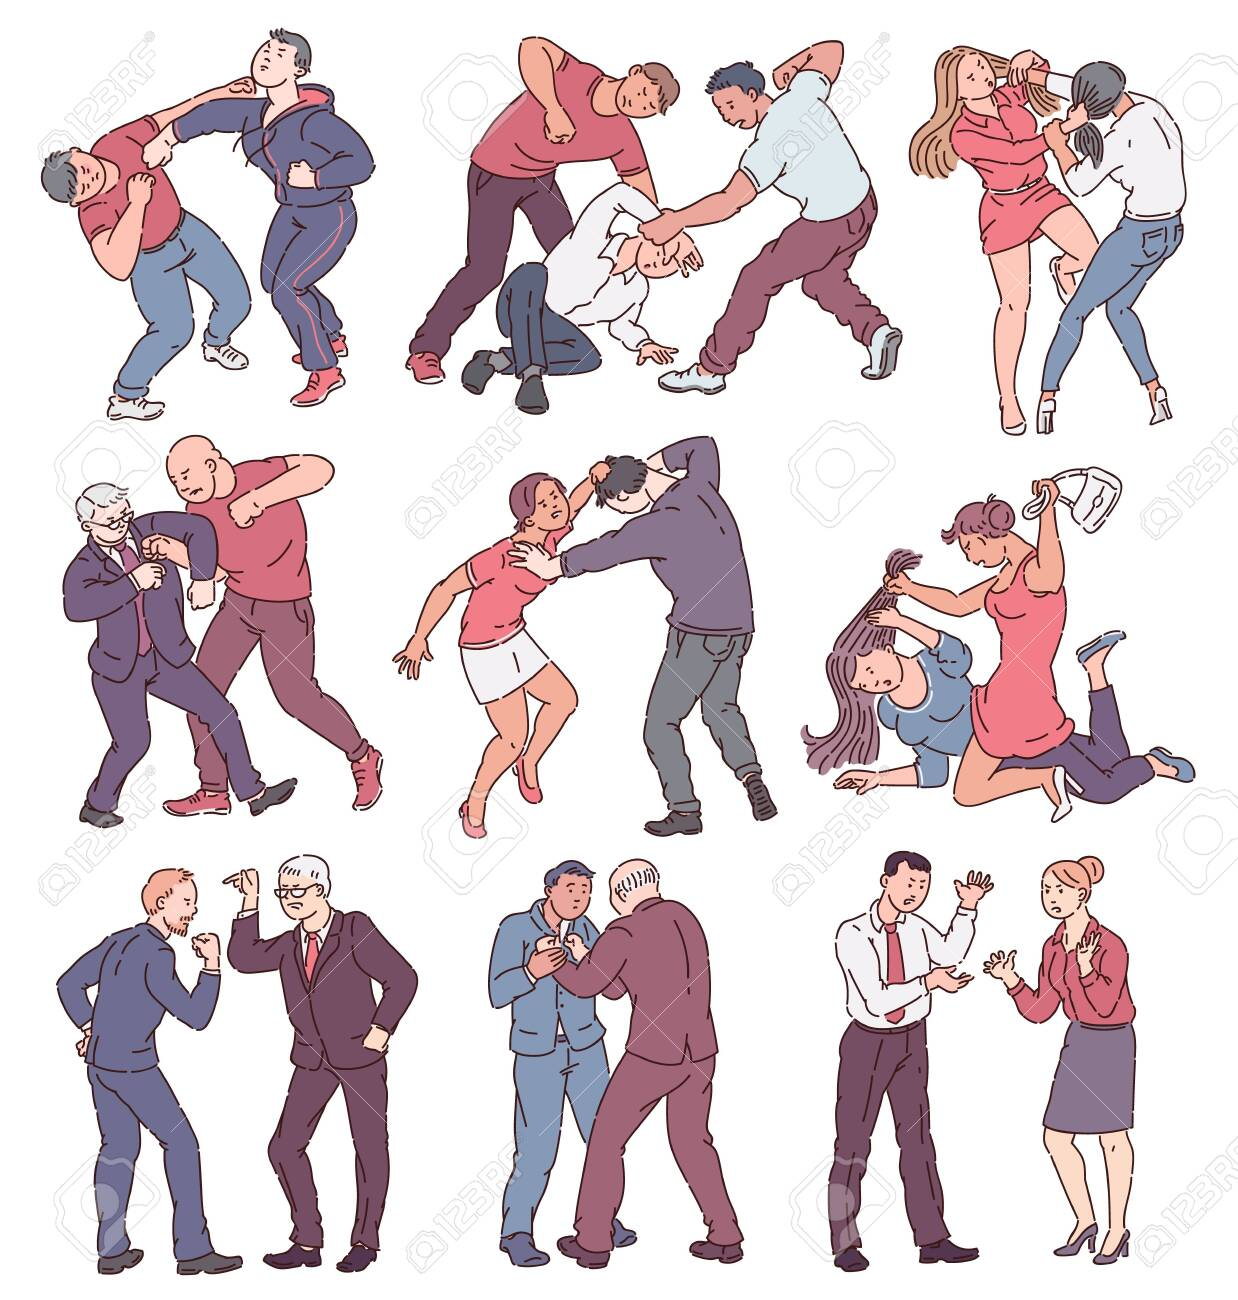 Collection of people during fight action, set of angry men and women in physical conflict, punching, hitting, threatening each other. Violence themed isolated vector illustration on white background. - 128171525